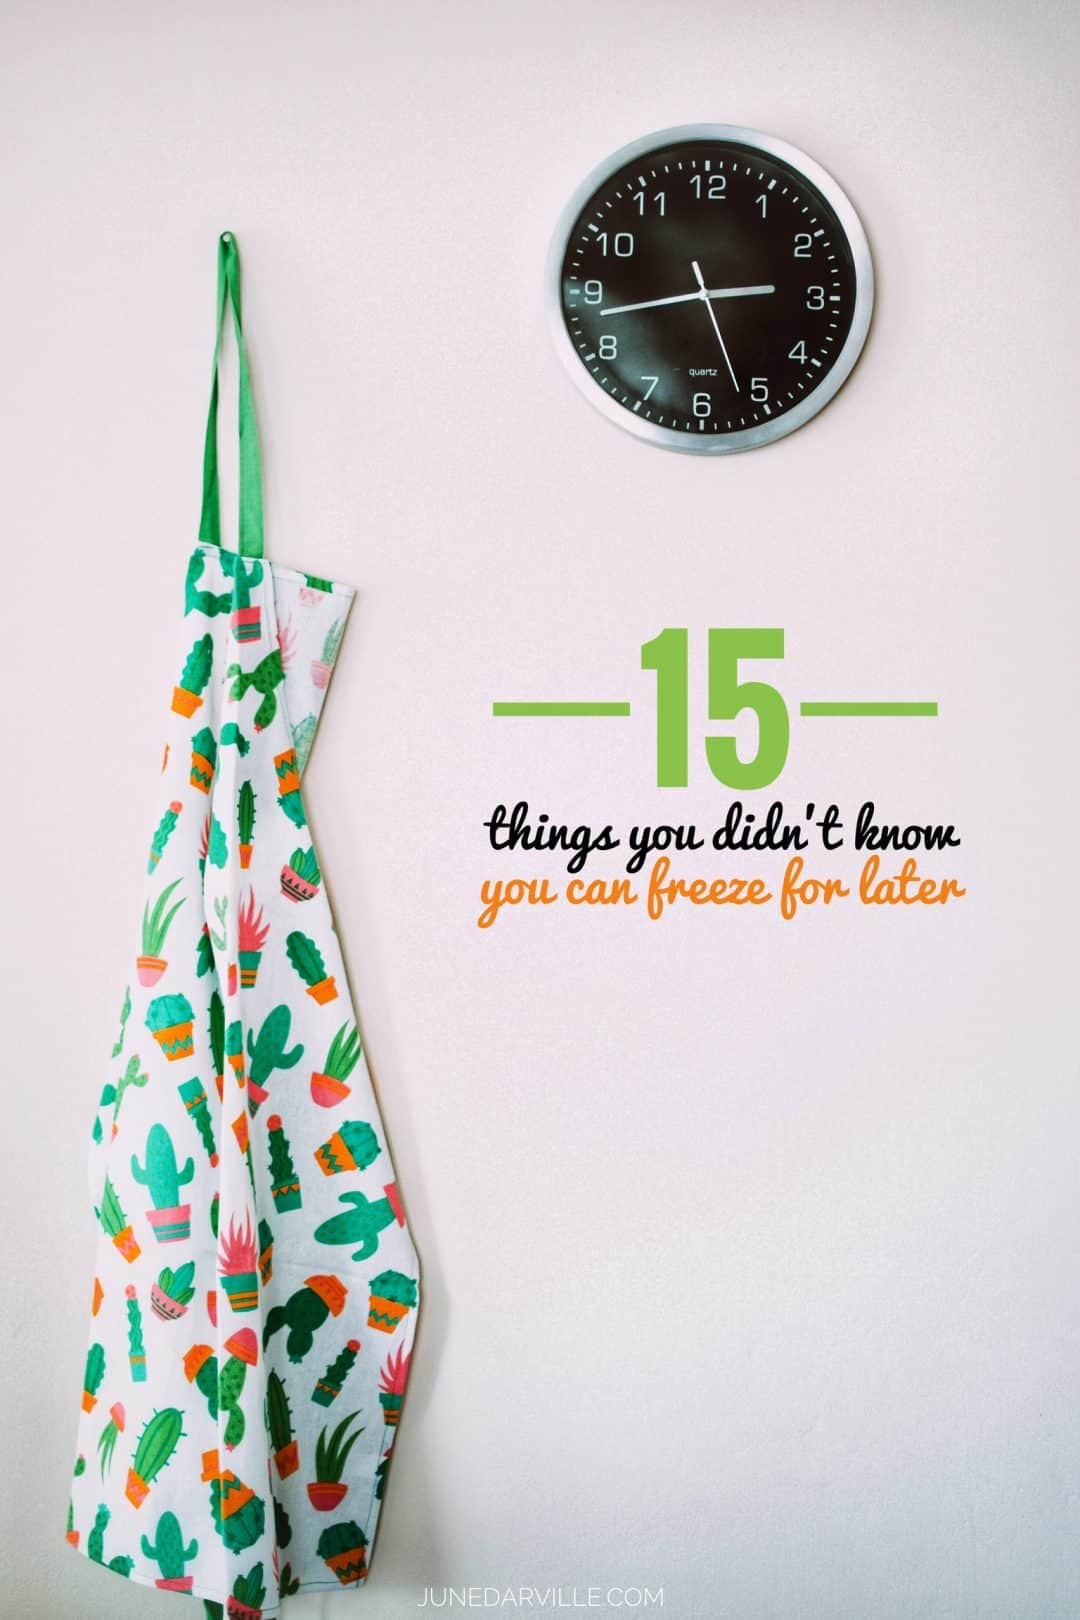 Leaving on a last minute trip? Foods you won't use within a few days but you don't want to throw them out? Here's 20 things you didn't know you can freeze!